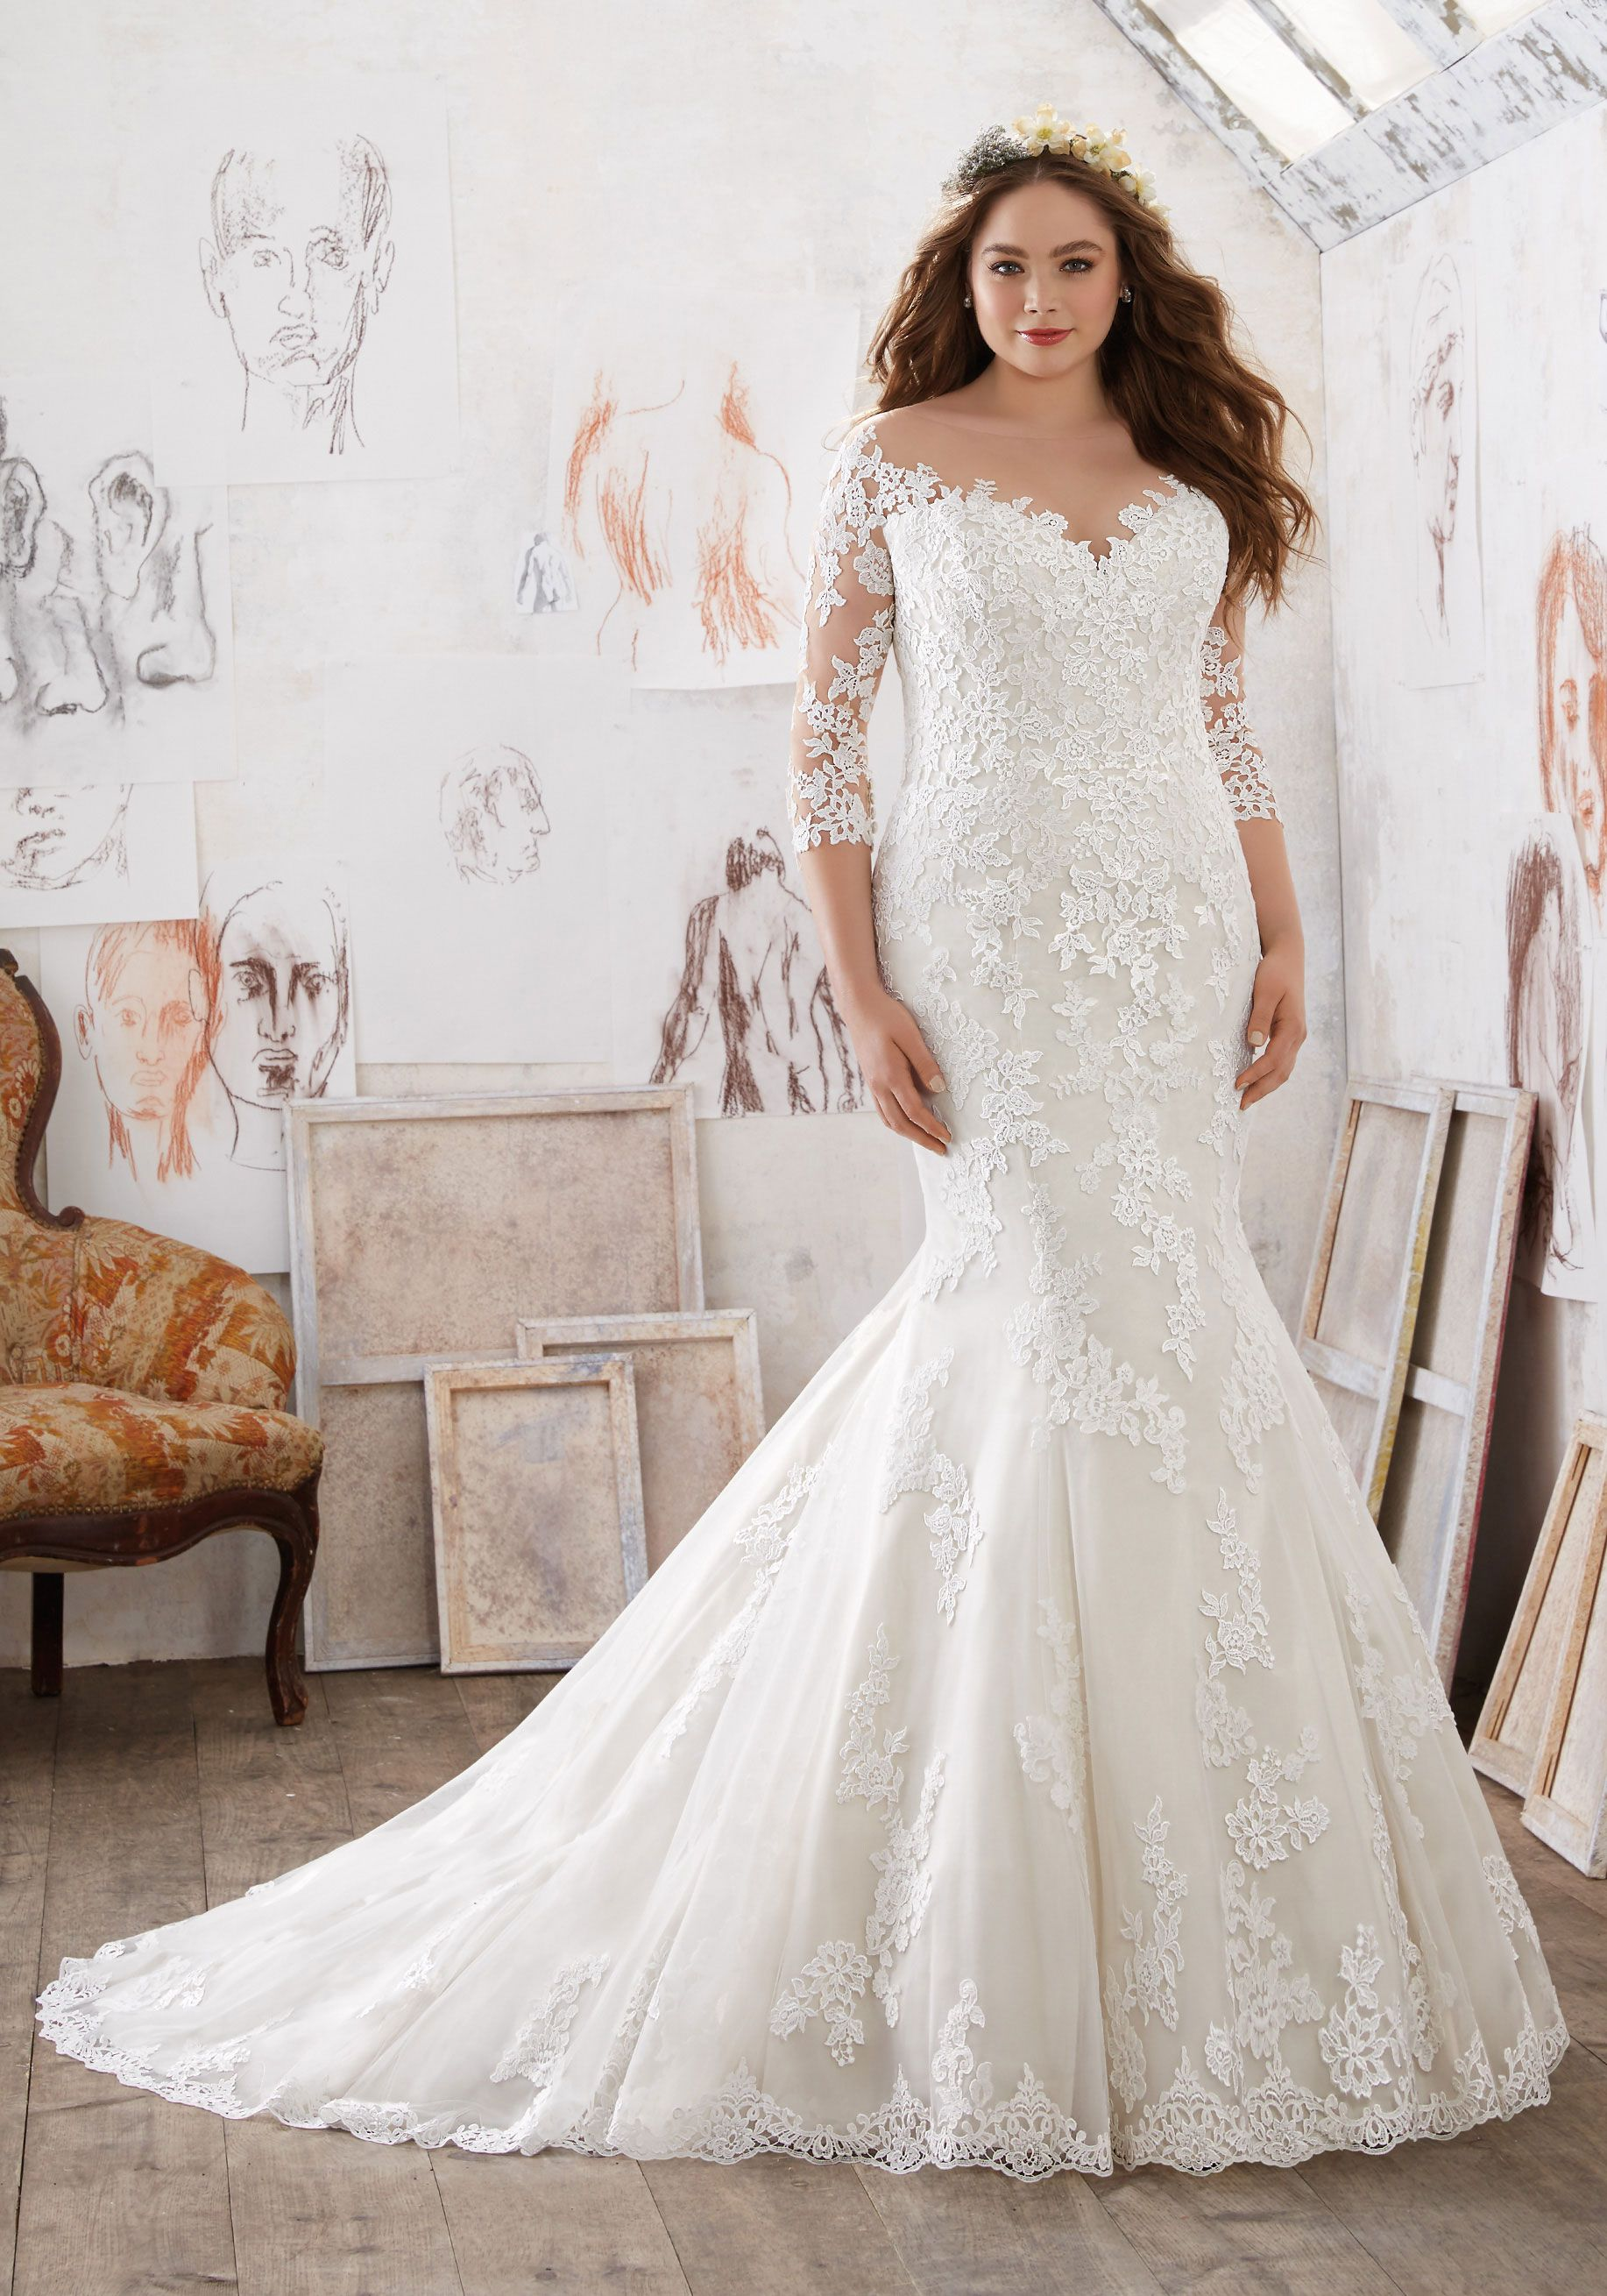 Designer Wedding Dresses And Bridal Gowns By Morilee This Plus Size